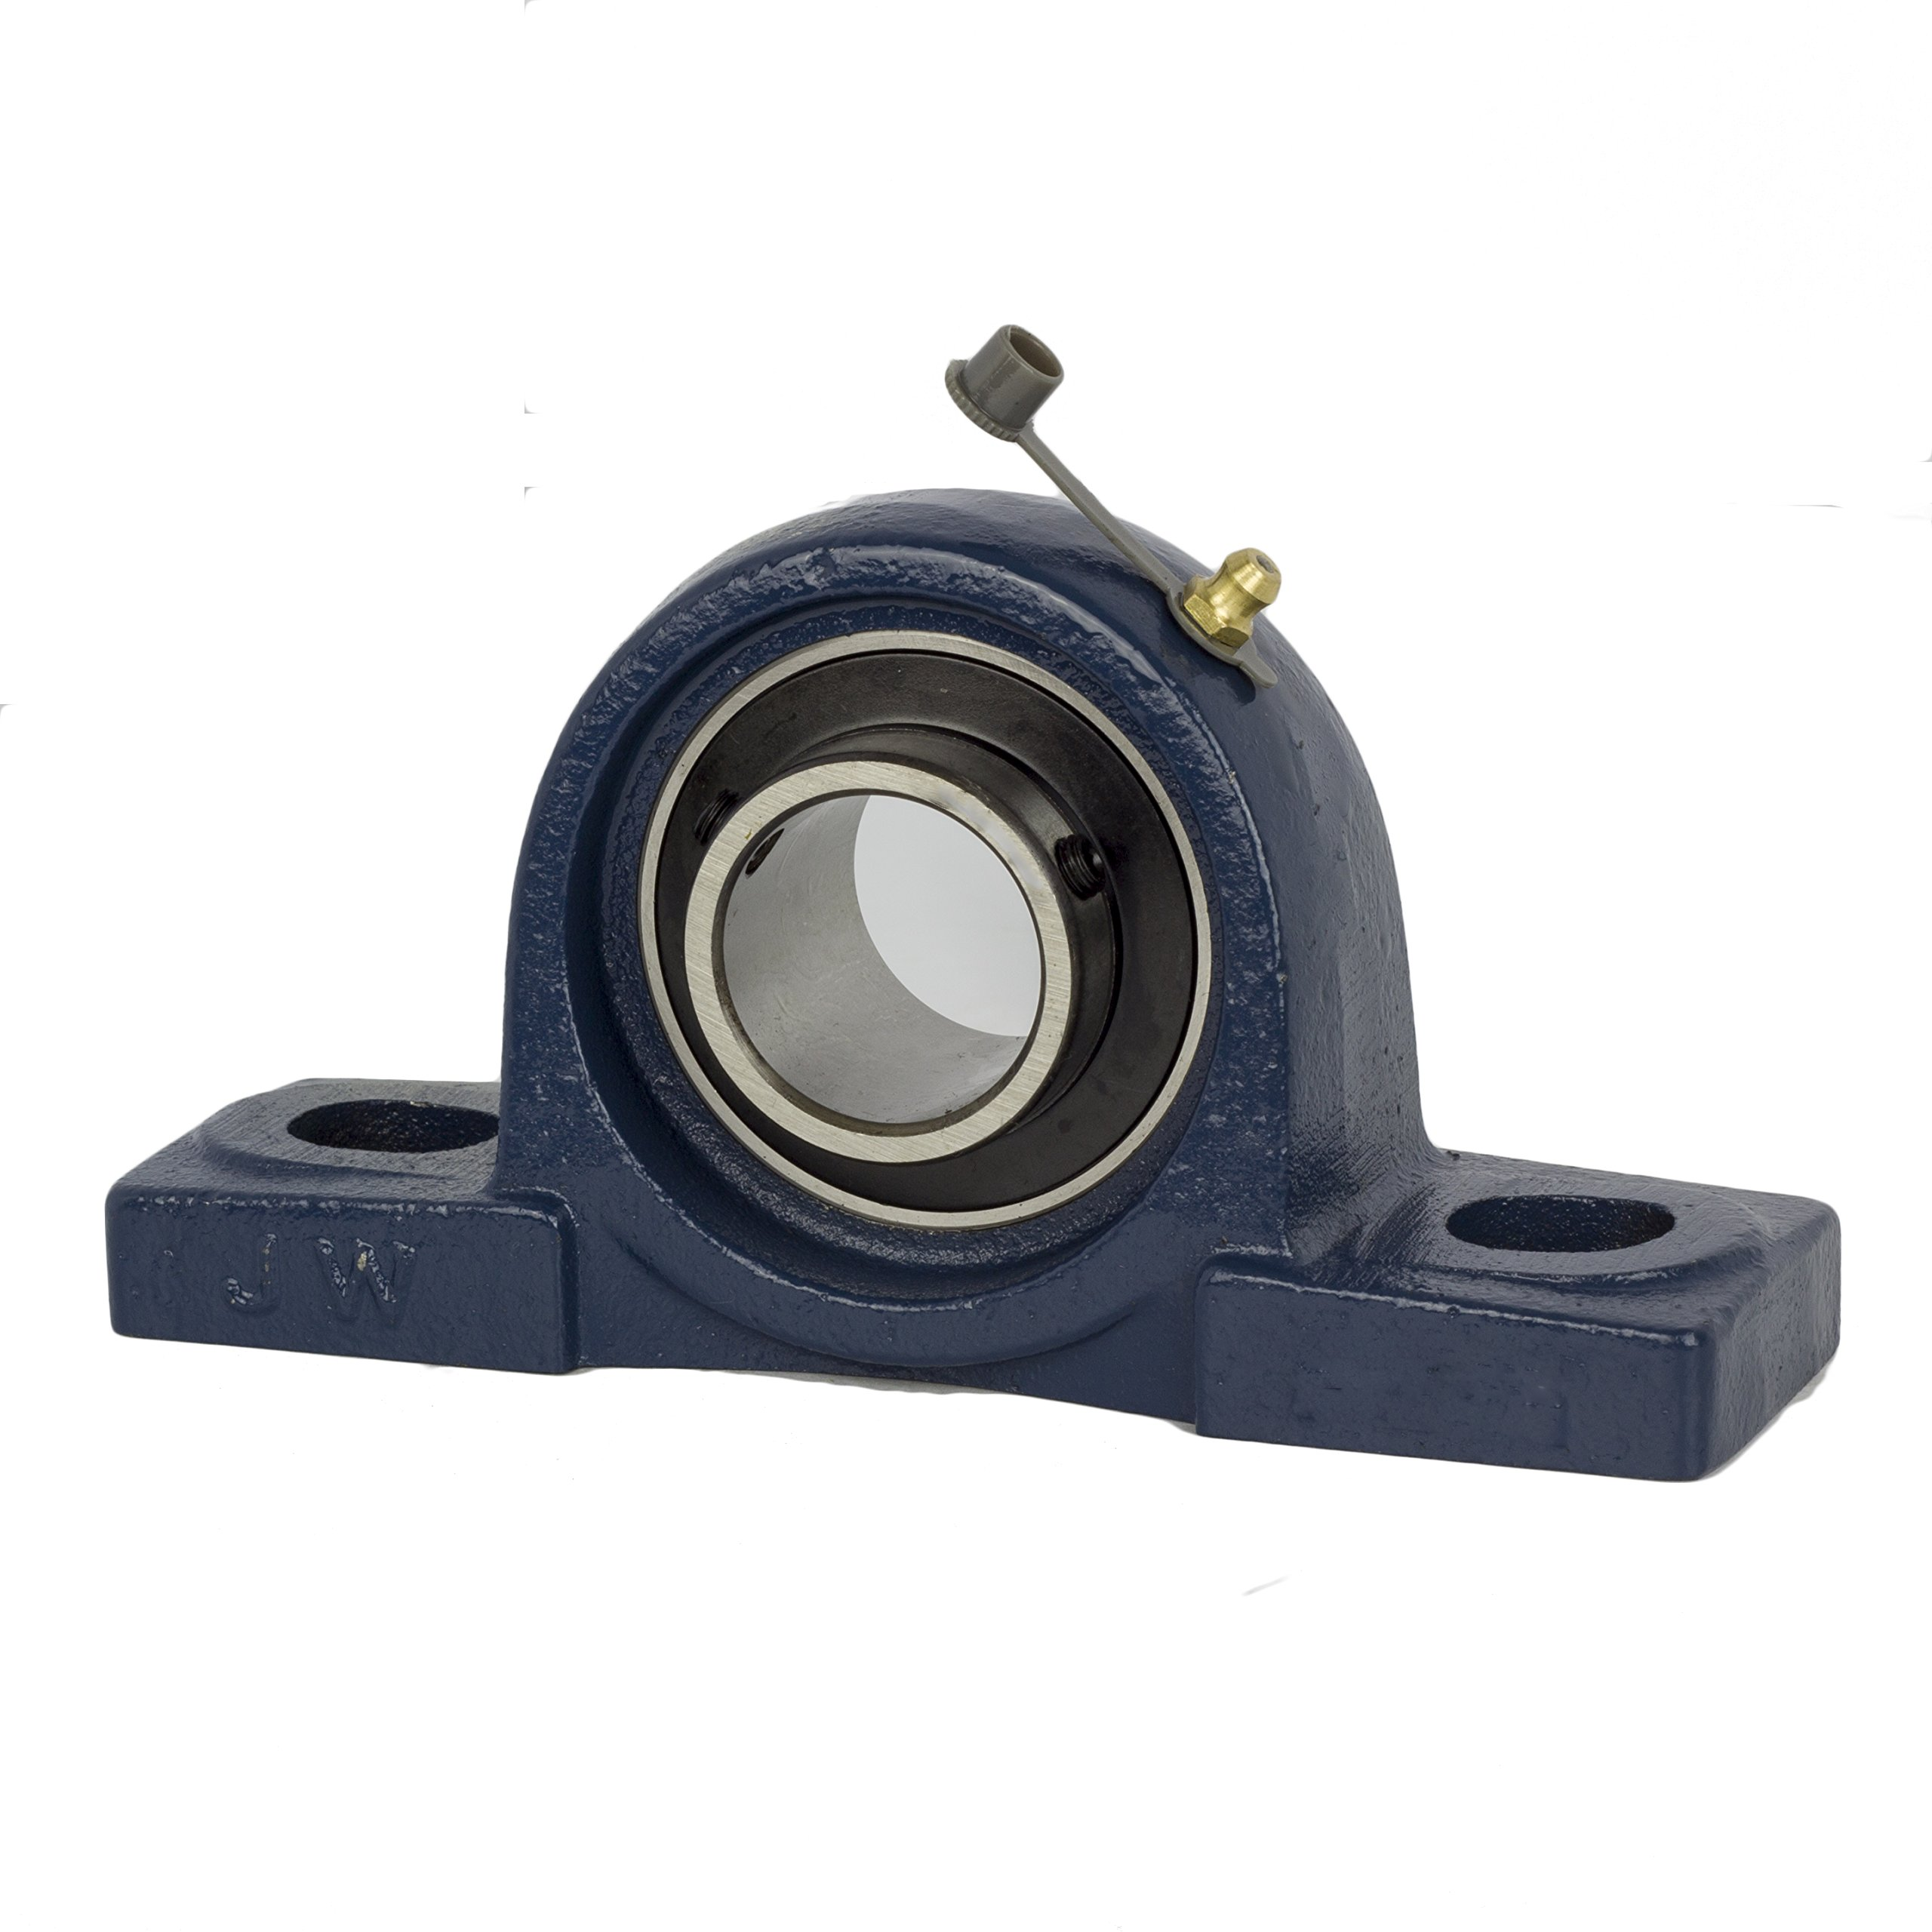 Jeremywell UCP205-16 Pillow Block Bearing Solid Base, 1'', Self-Alignment, 1.5'' Width, 2.736'' Length, Cast Iron/Chromium Steel (Pack of 4)